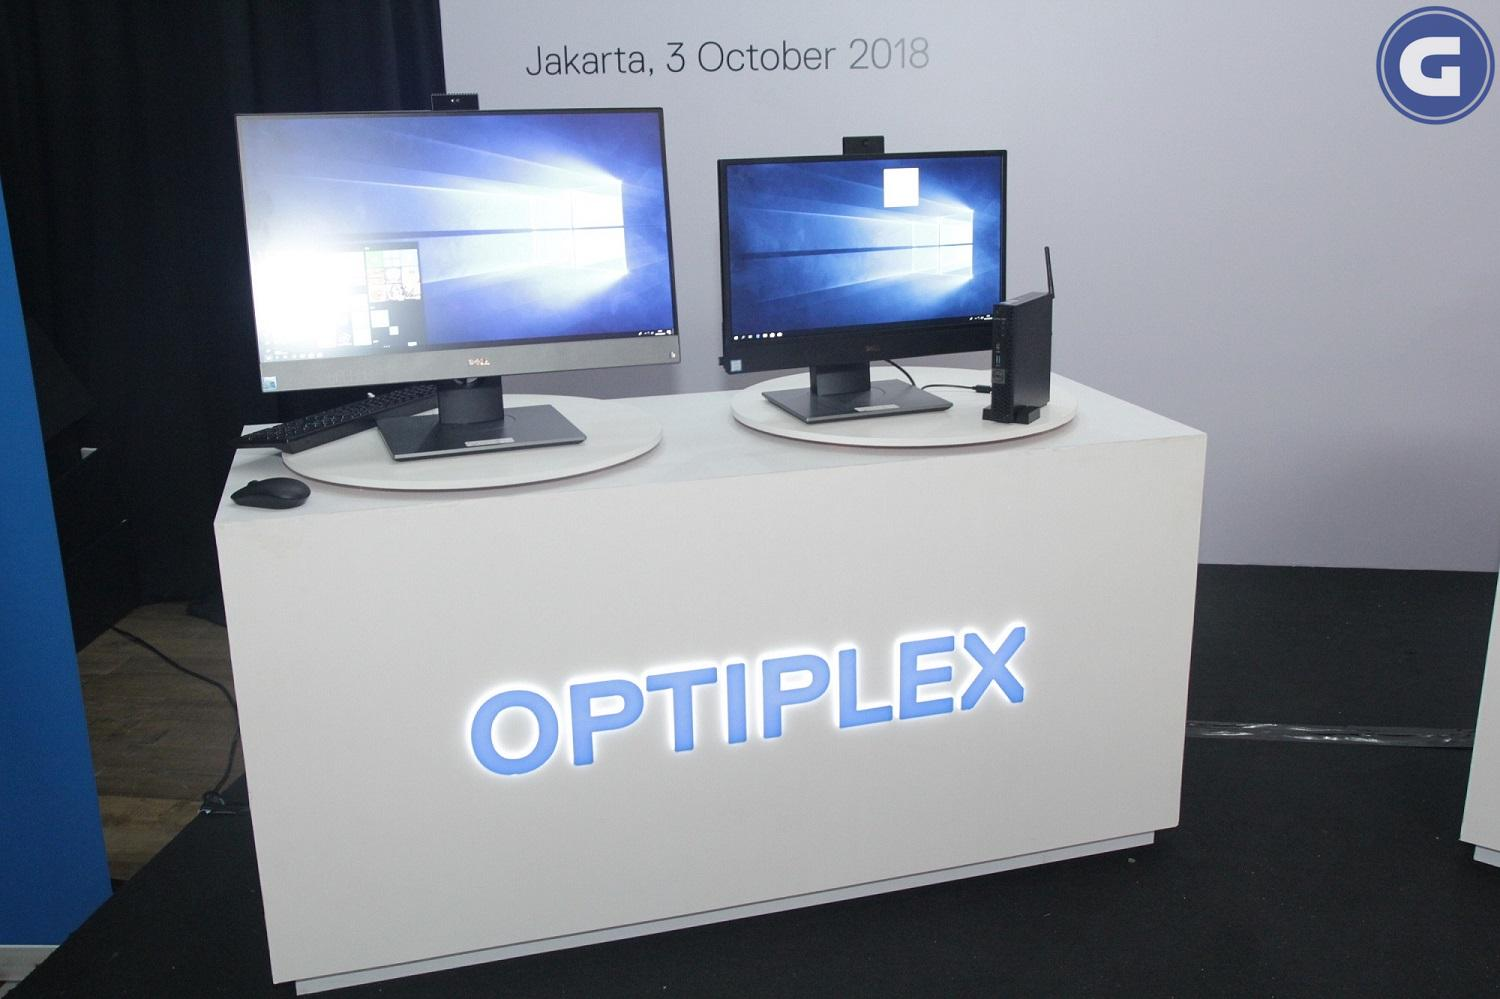 Dell OptiPlex terbaru